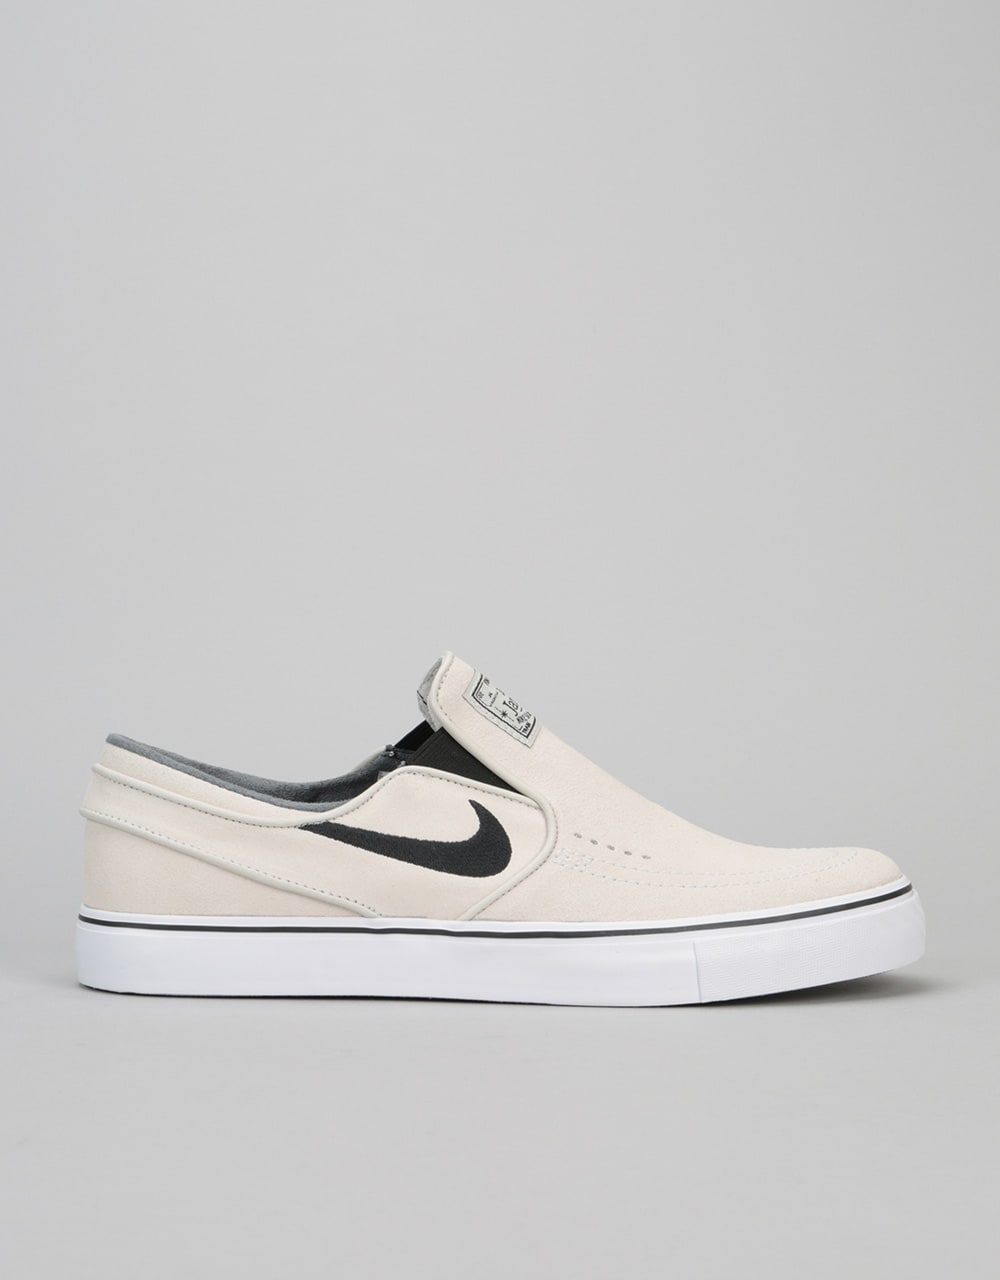 quality design 3fc15 fbfc7 Nike SB Stefan Janoski Slip On Skate Shoes - Light Bone Black-White   Mens  Footwear   Trainers   Skate Shoes   Sneakers   Runners   Route One